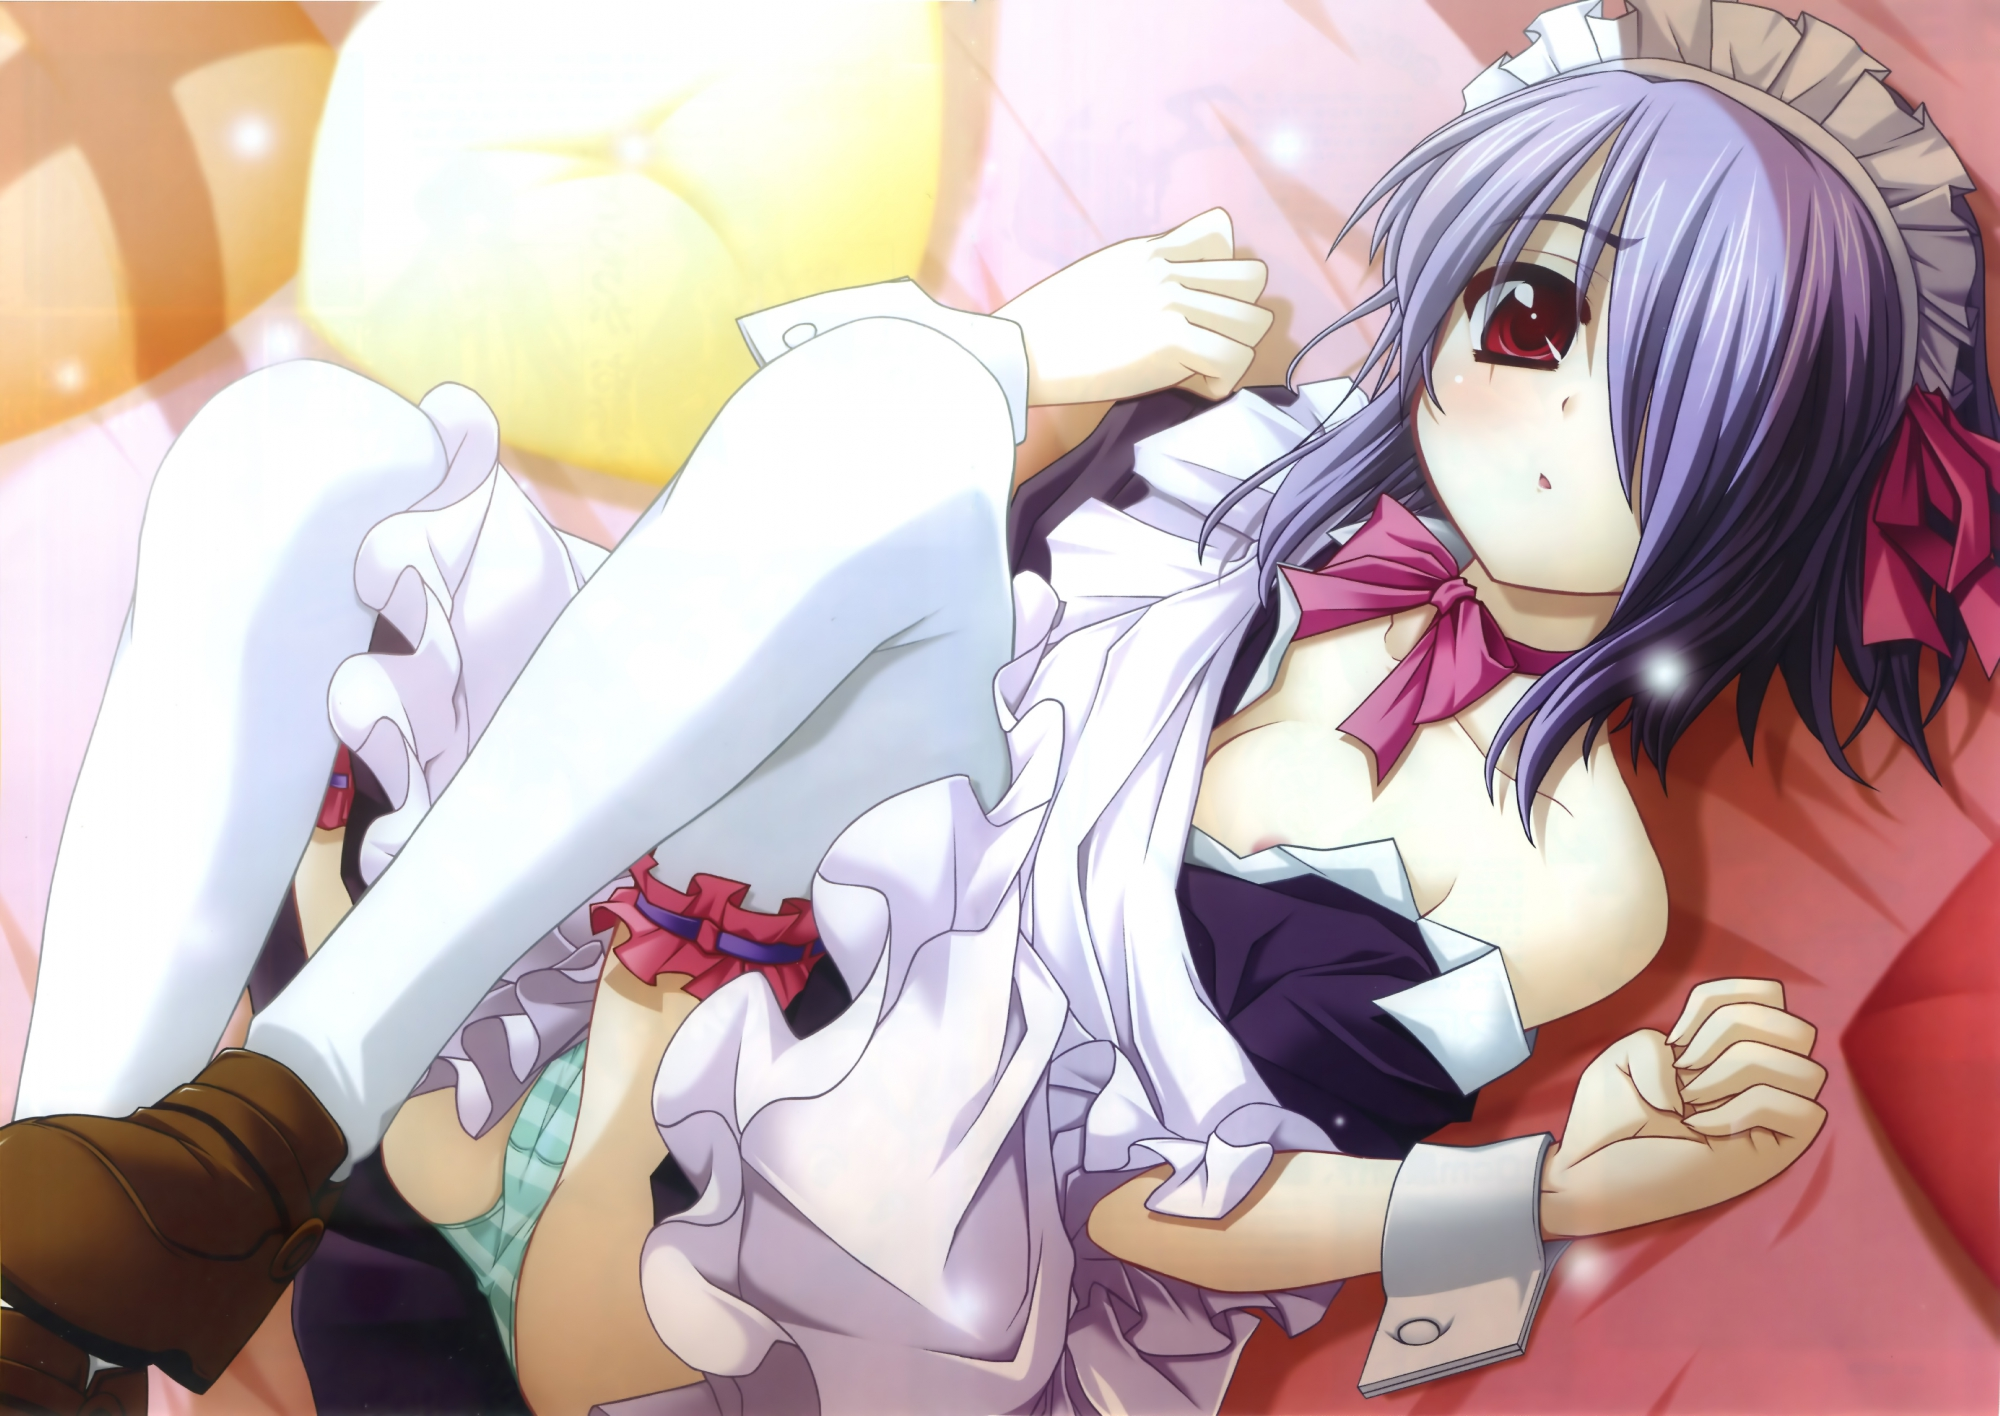 bed blue_hair blush cameltoe furifuri maid open_shirt panties red_eyes sensui_iko short_hair striped_panties thighhighs tsukuyomi_kaguya underwear